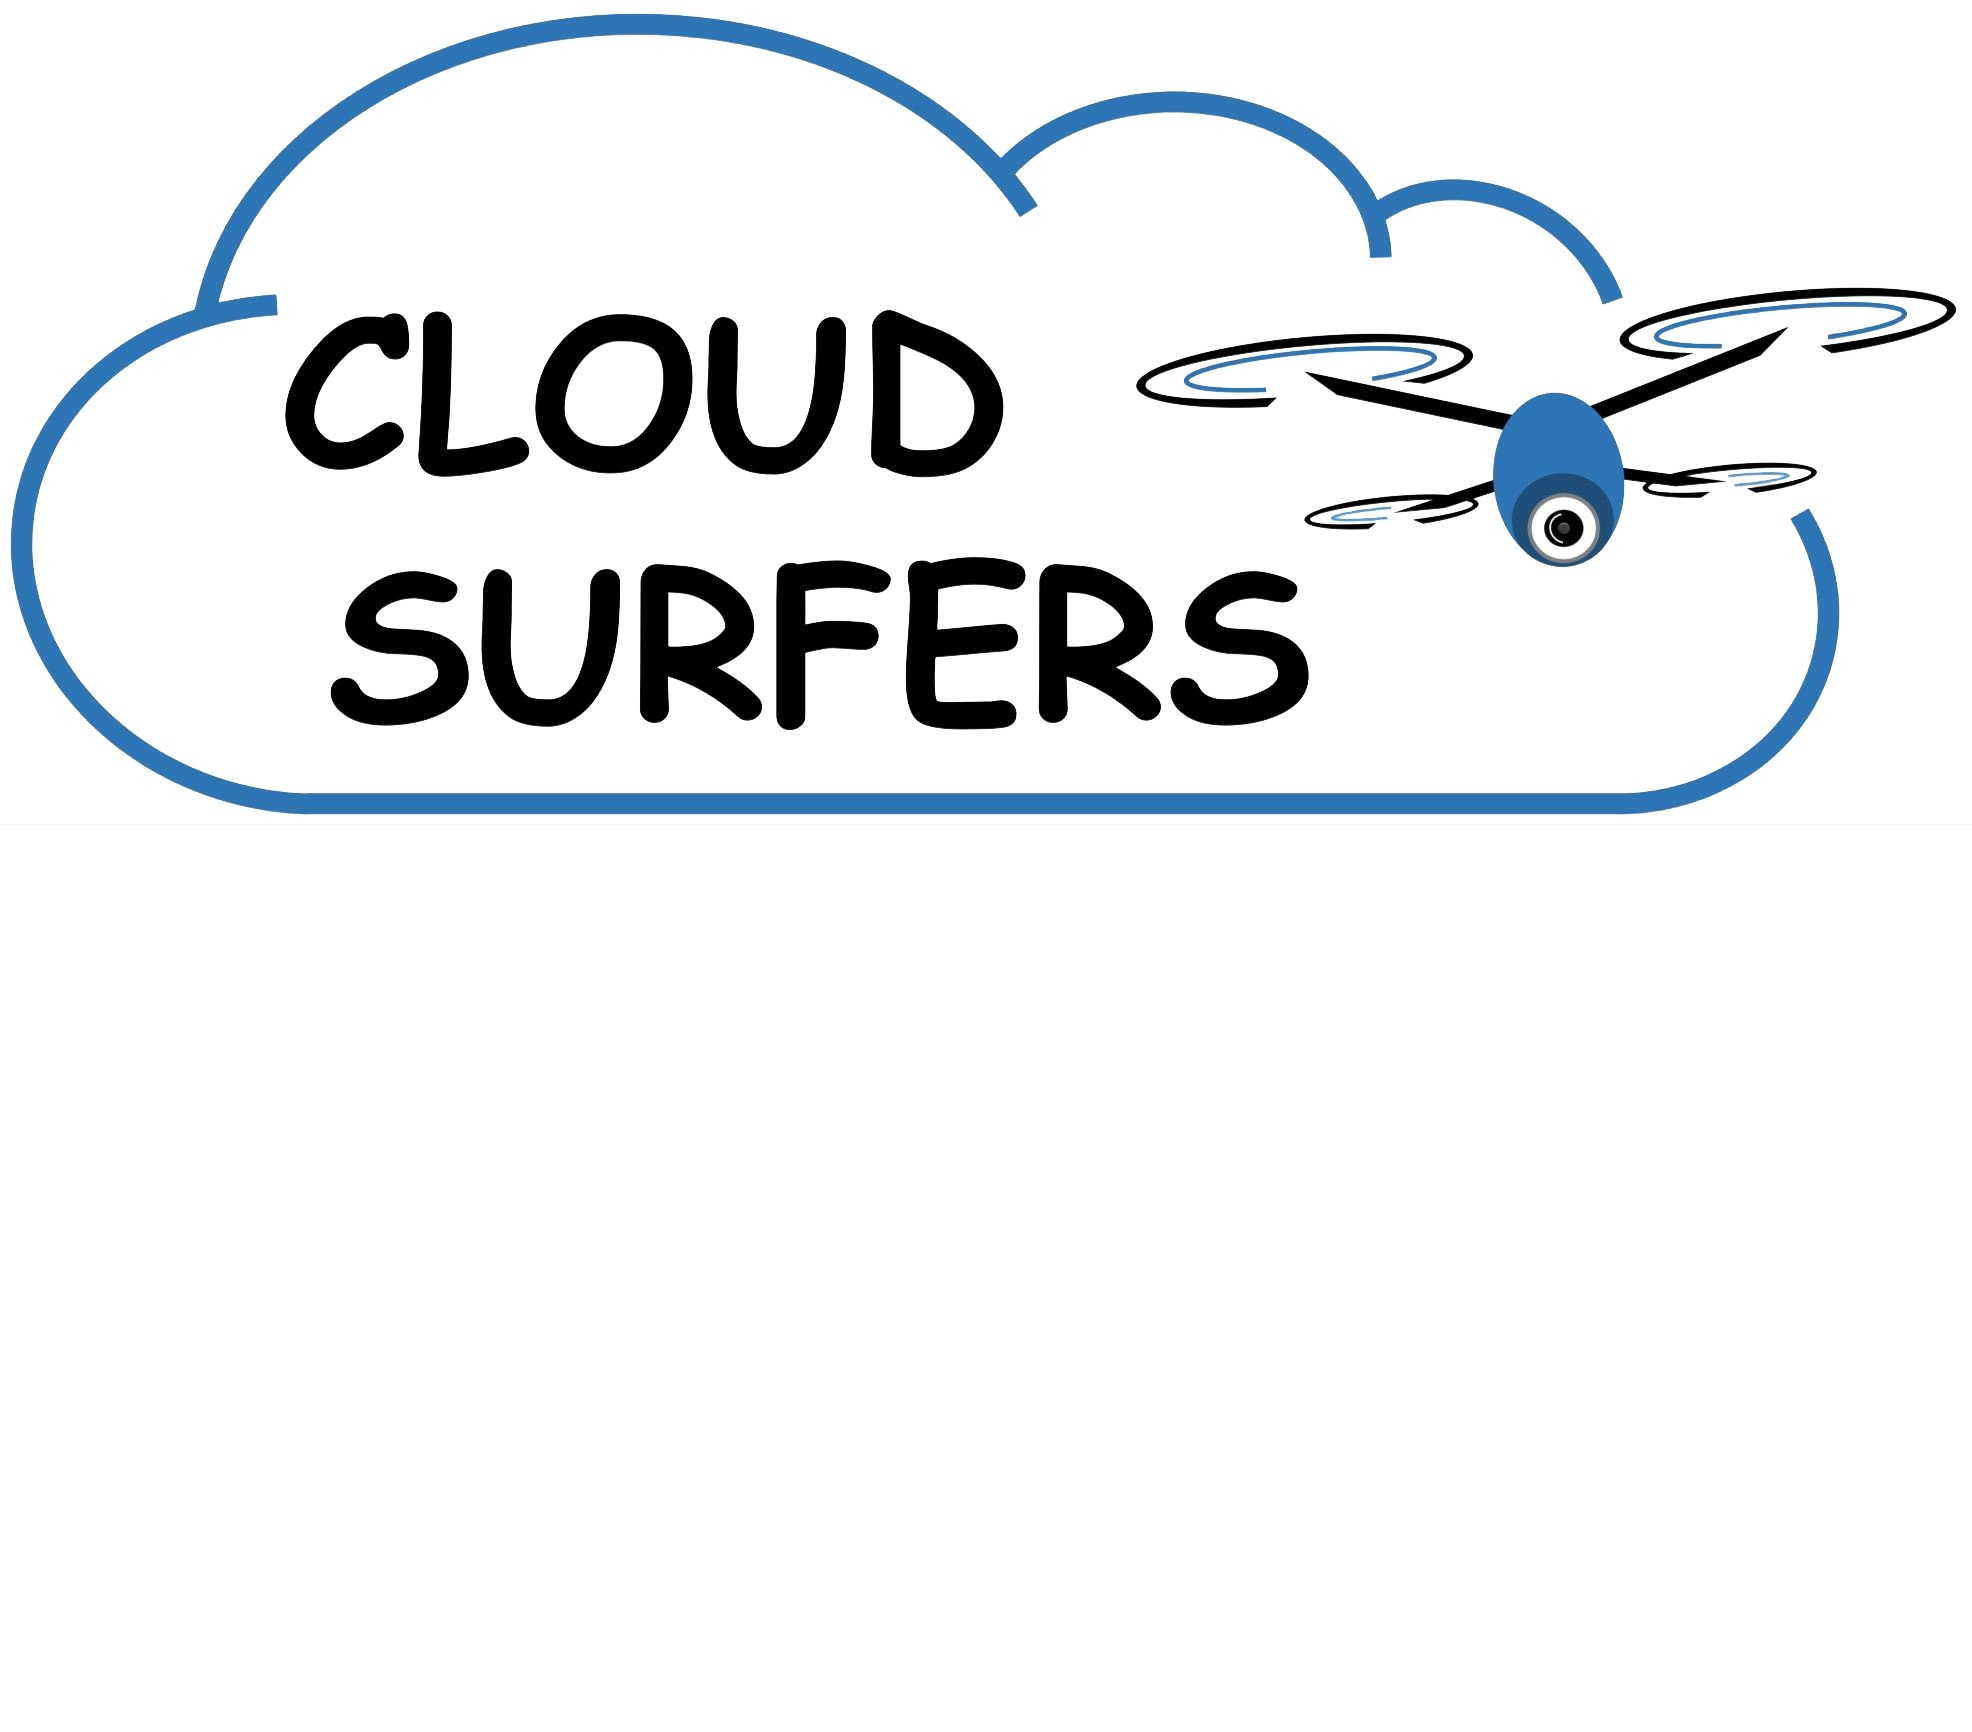 Cloud Surfers